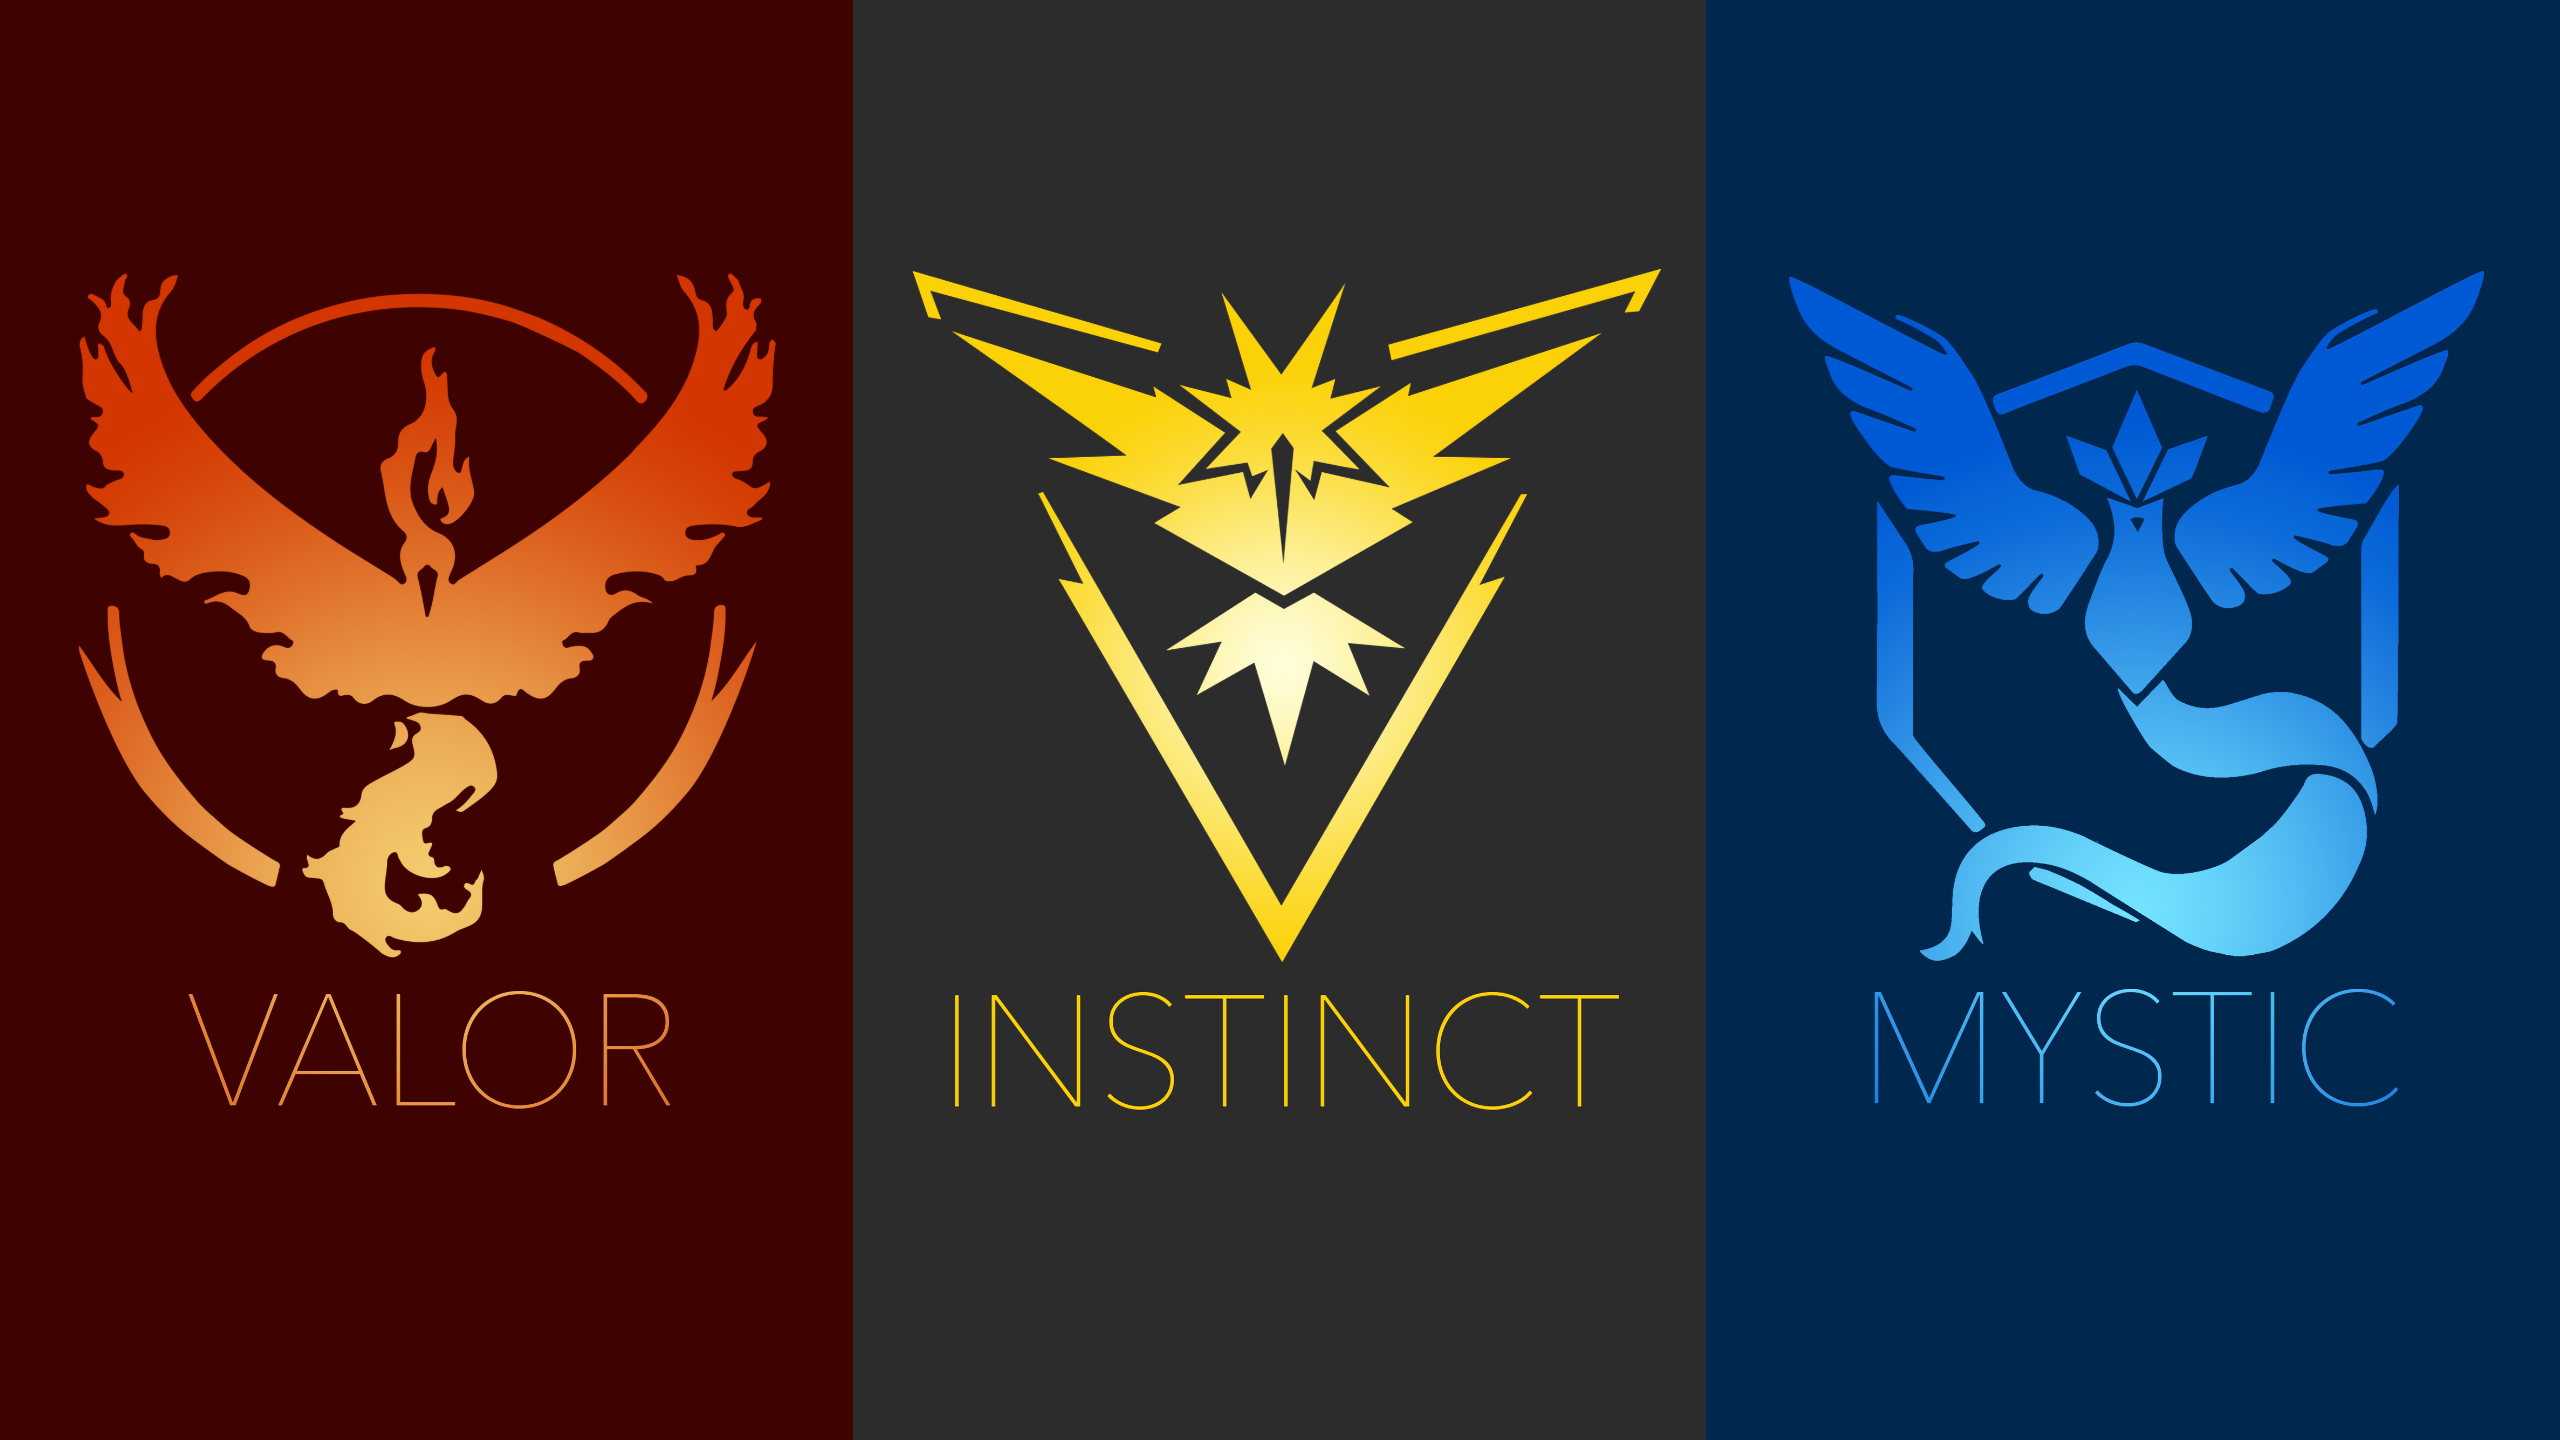 33 Team Valor HD Wallpapers Background Images 2560x1440